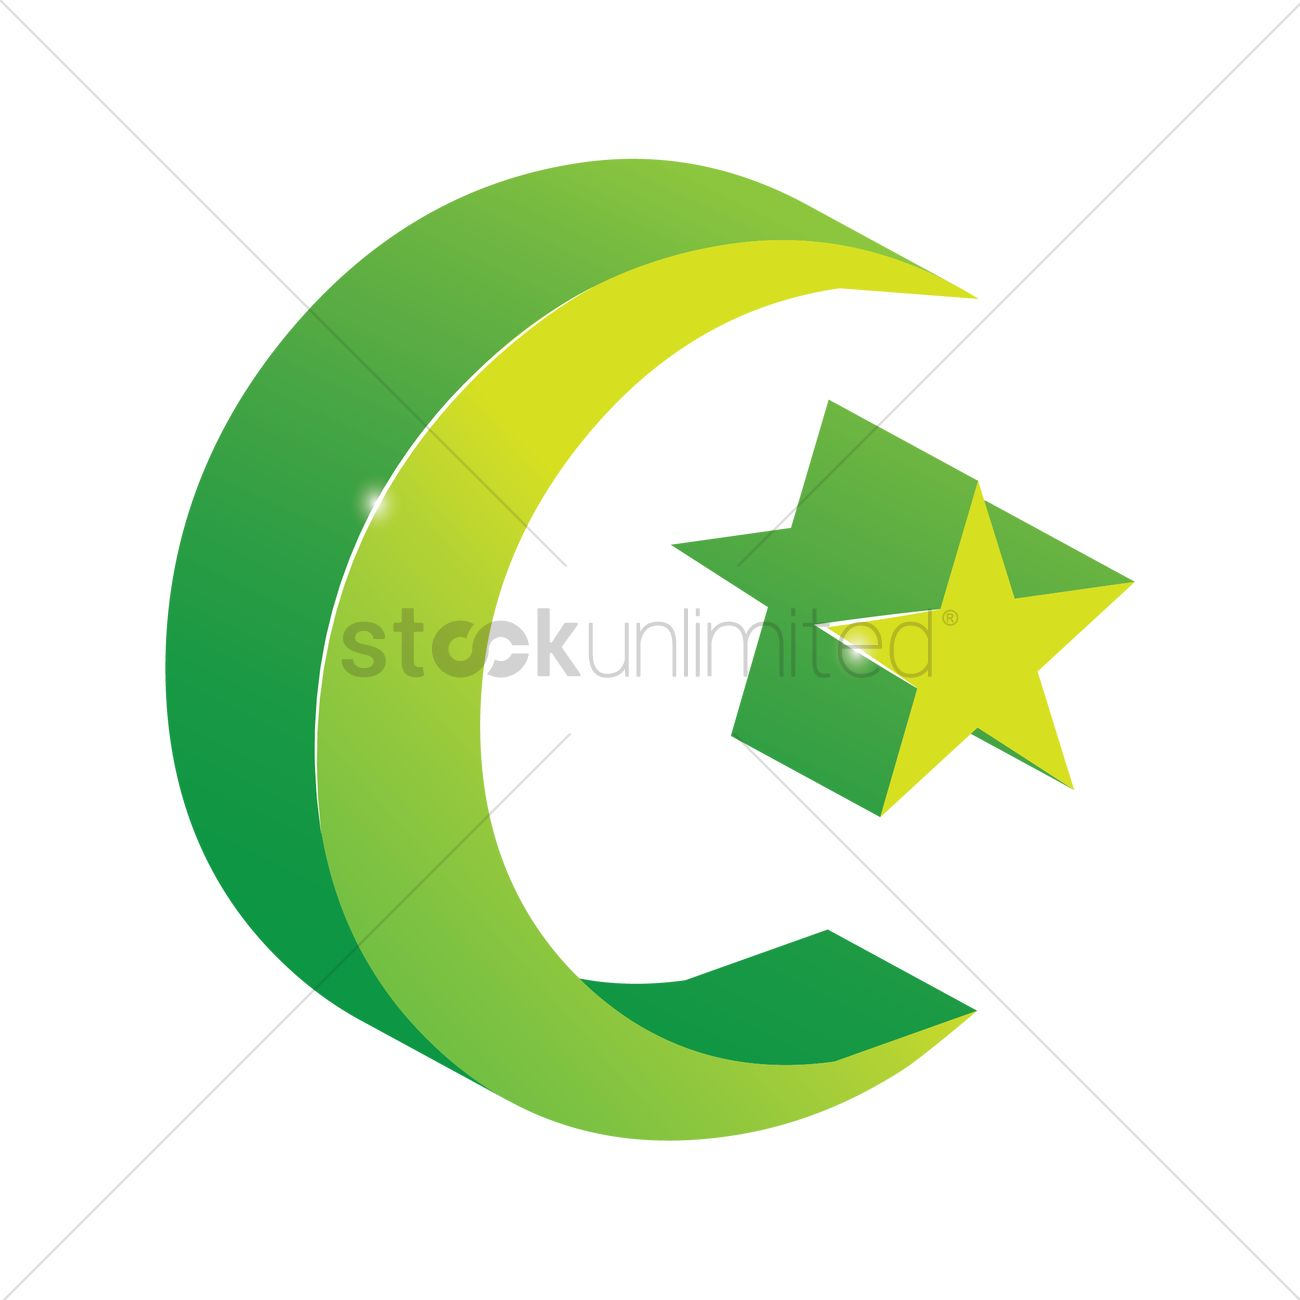 Islam symbol Vector Image - 1866437 | StockUnlimited